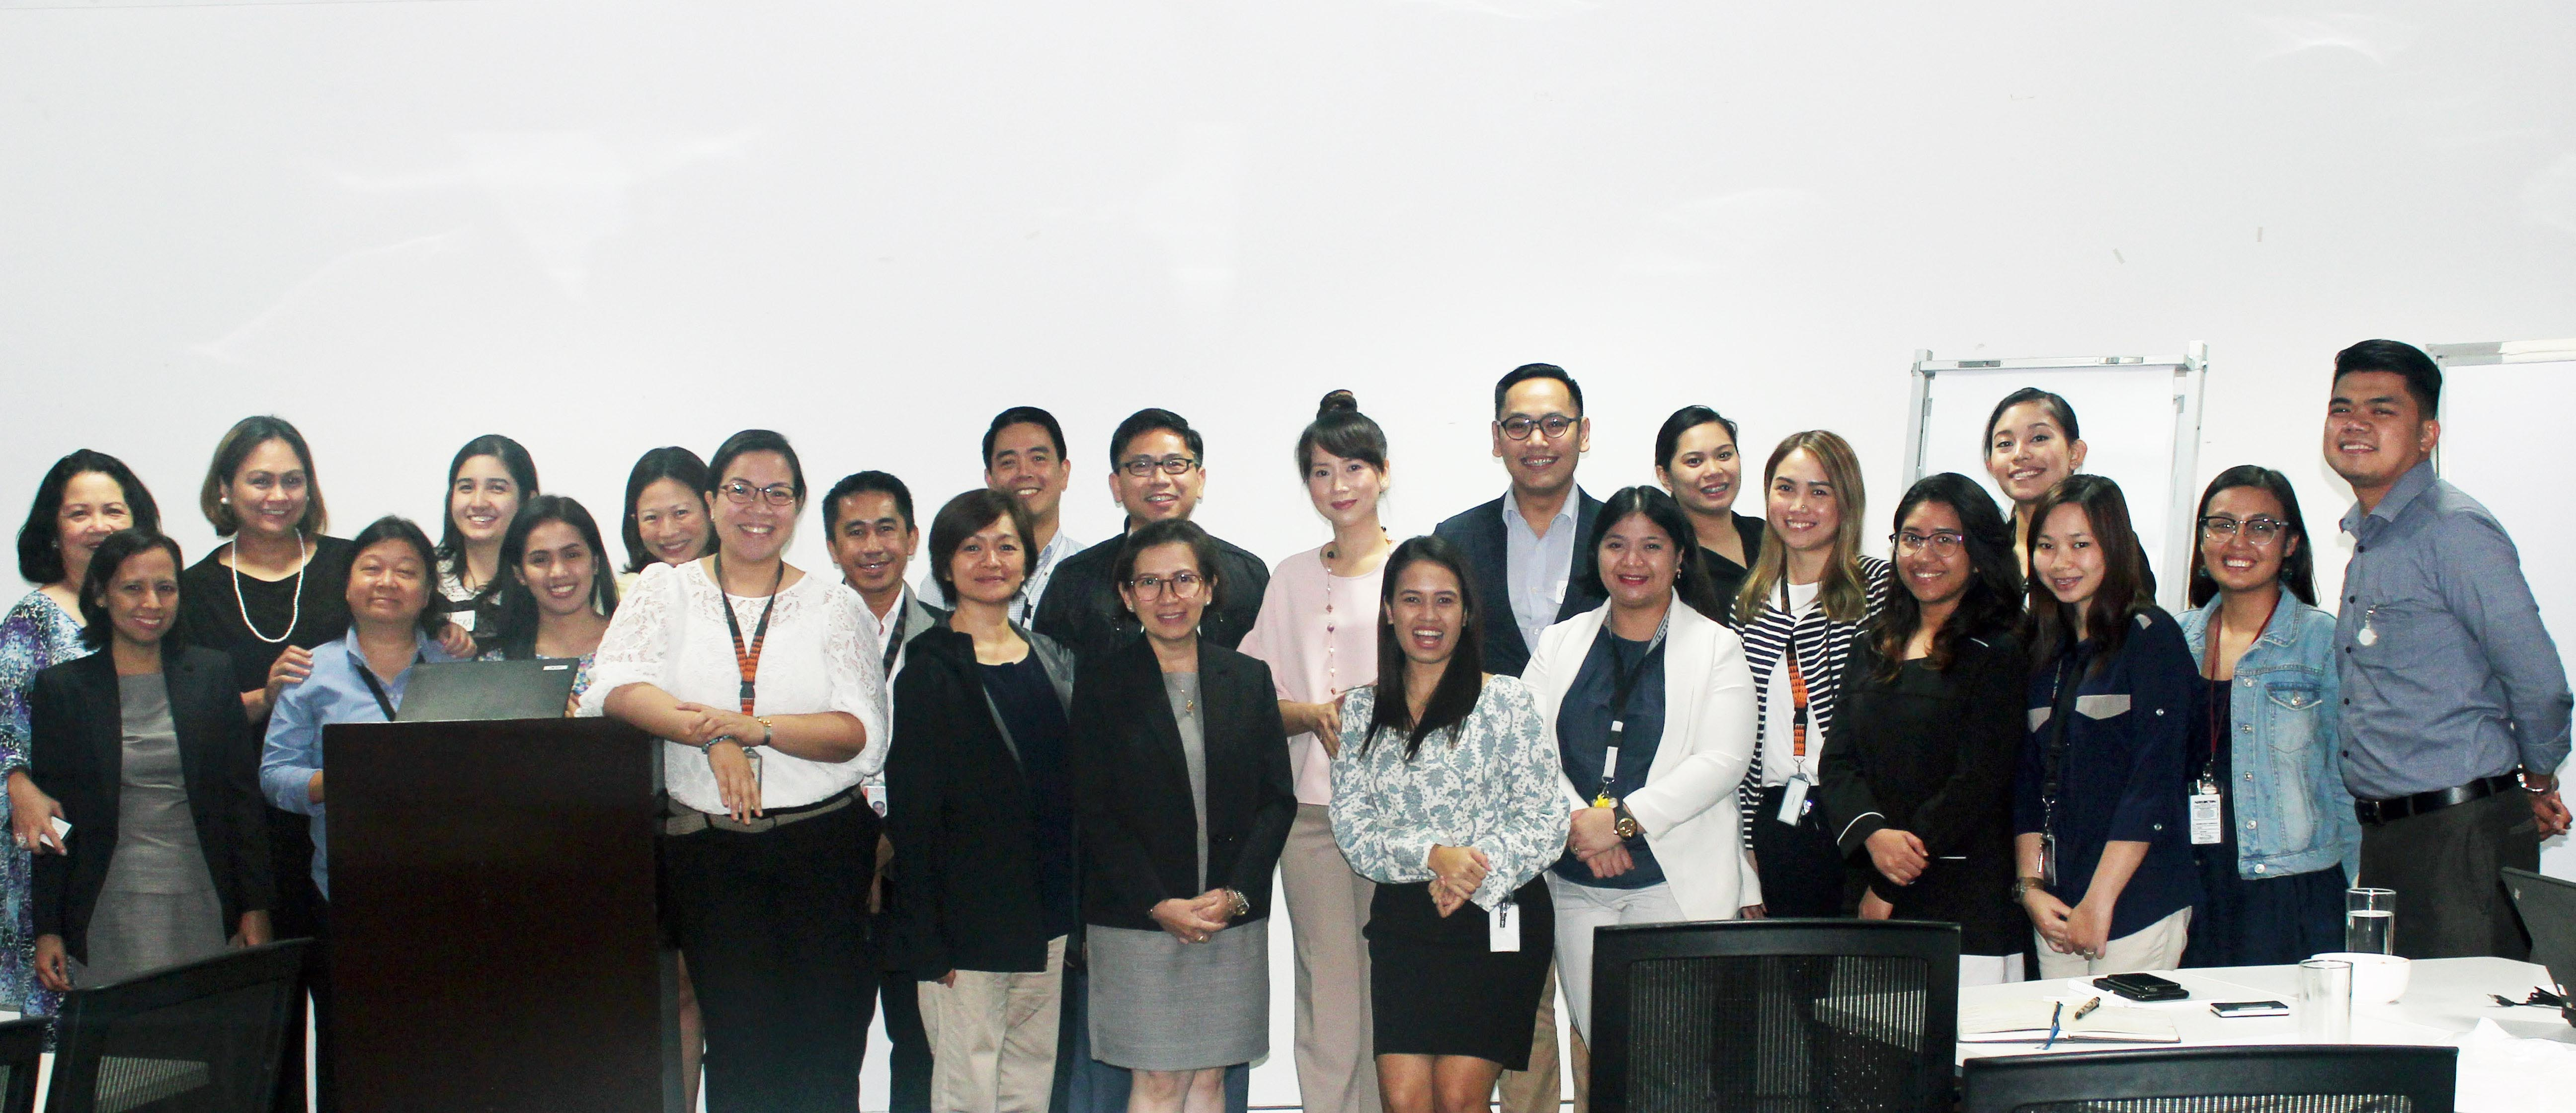 HR Council members pose for a class photo with speaker Romina Cabochan